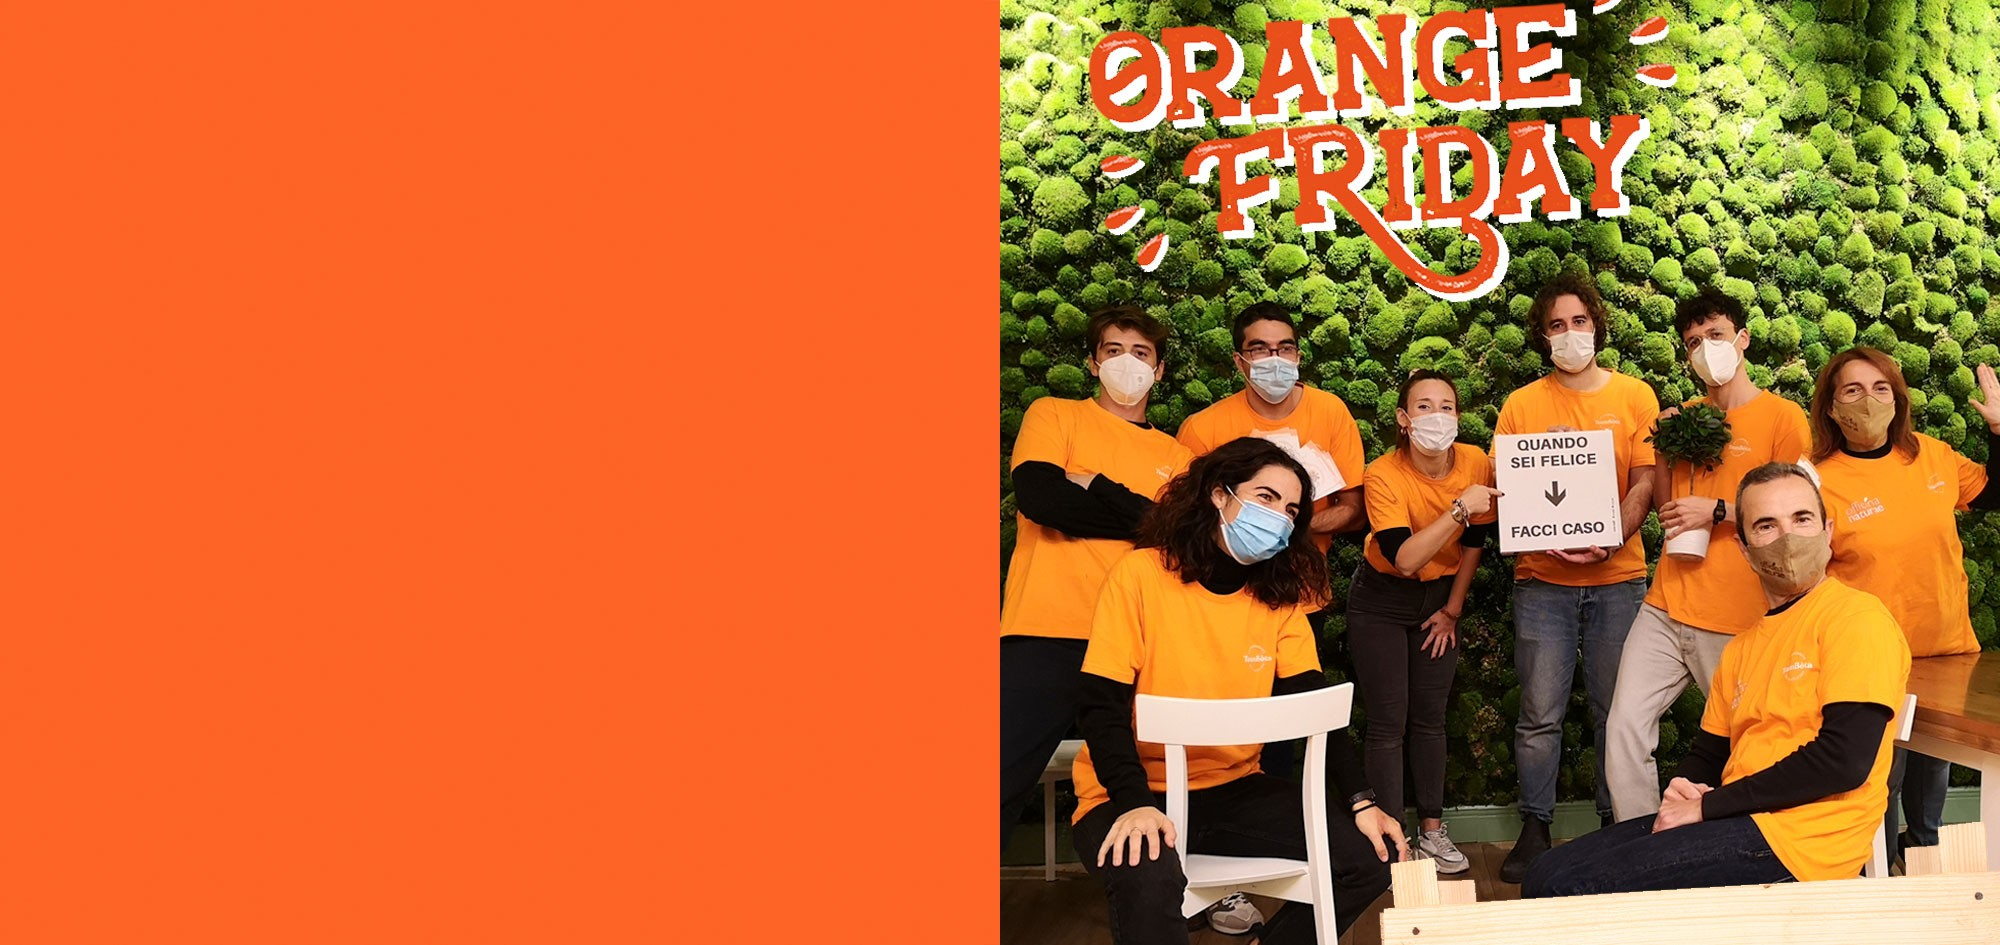 Orange Friday, un Black Friday diverso e solidale